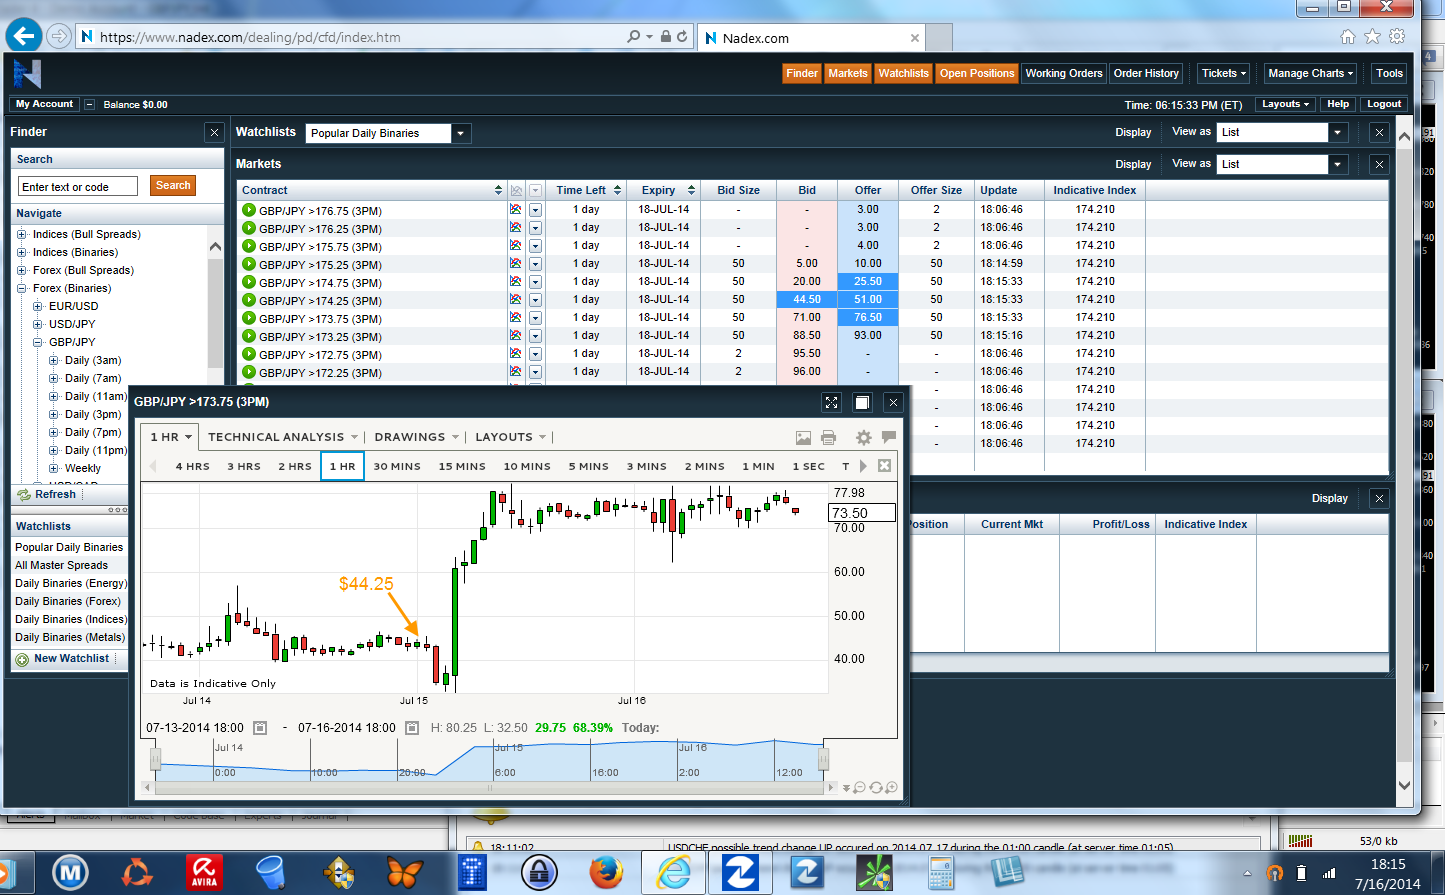 gbpjpy-t1-wkly-t3-h4-bto-call-173.75-expiry-3pm-est-07.18.2014.png